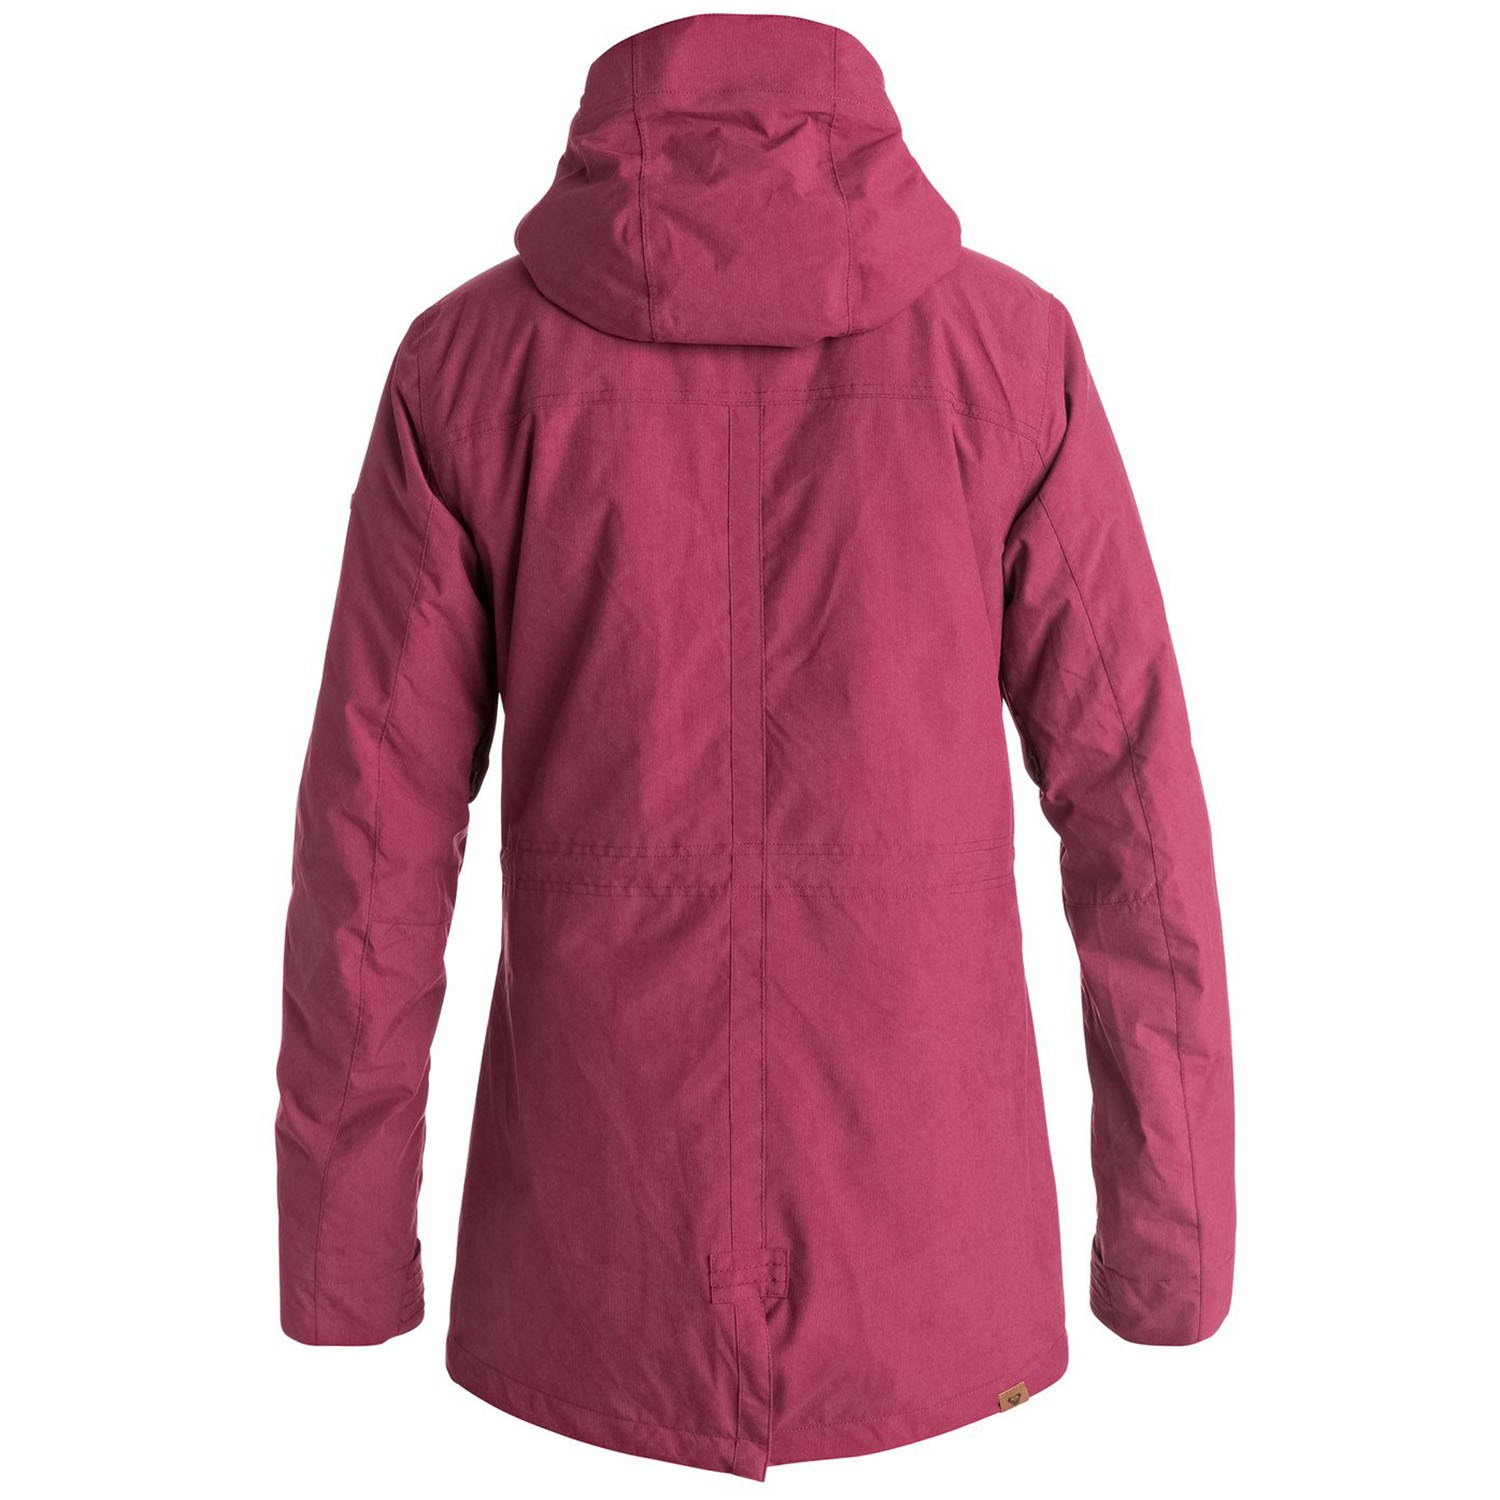 Roxy Tribe Jacket - Women s  8250b5671